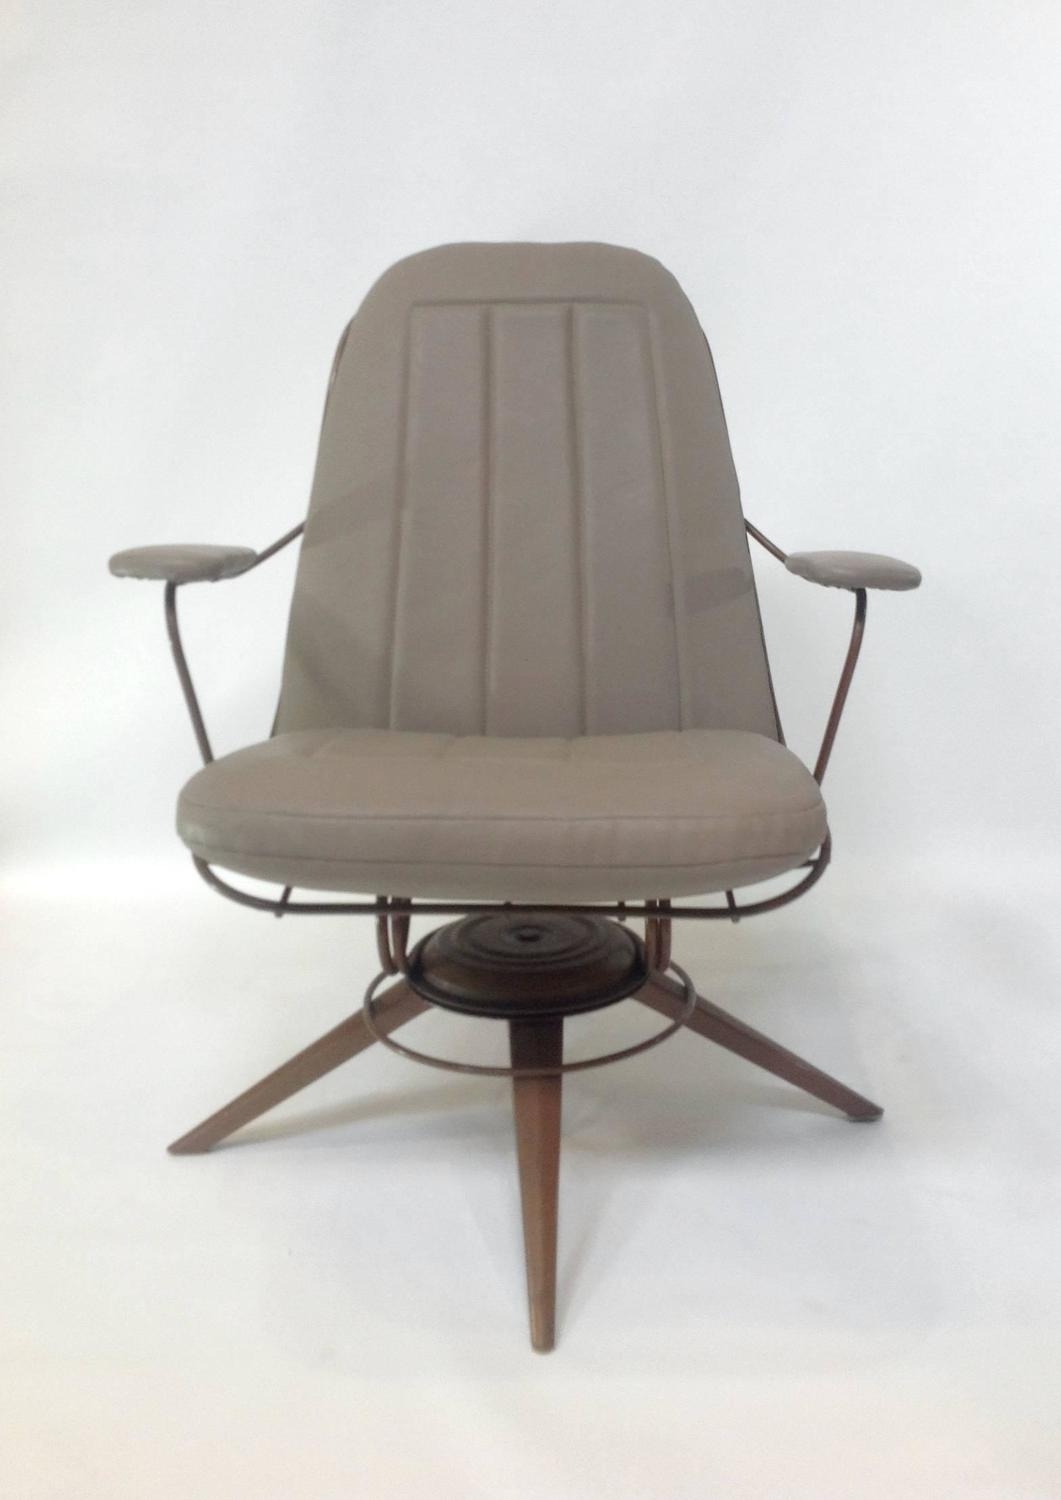 mid century modern wire chair swing replacement parts homecrest deck chairs for sale at